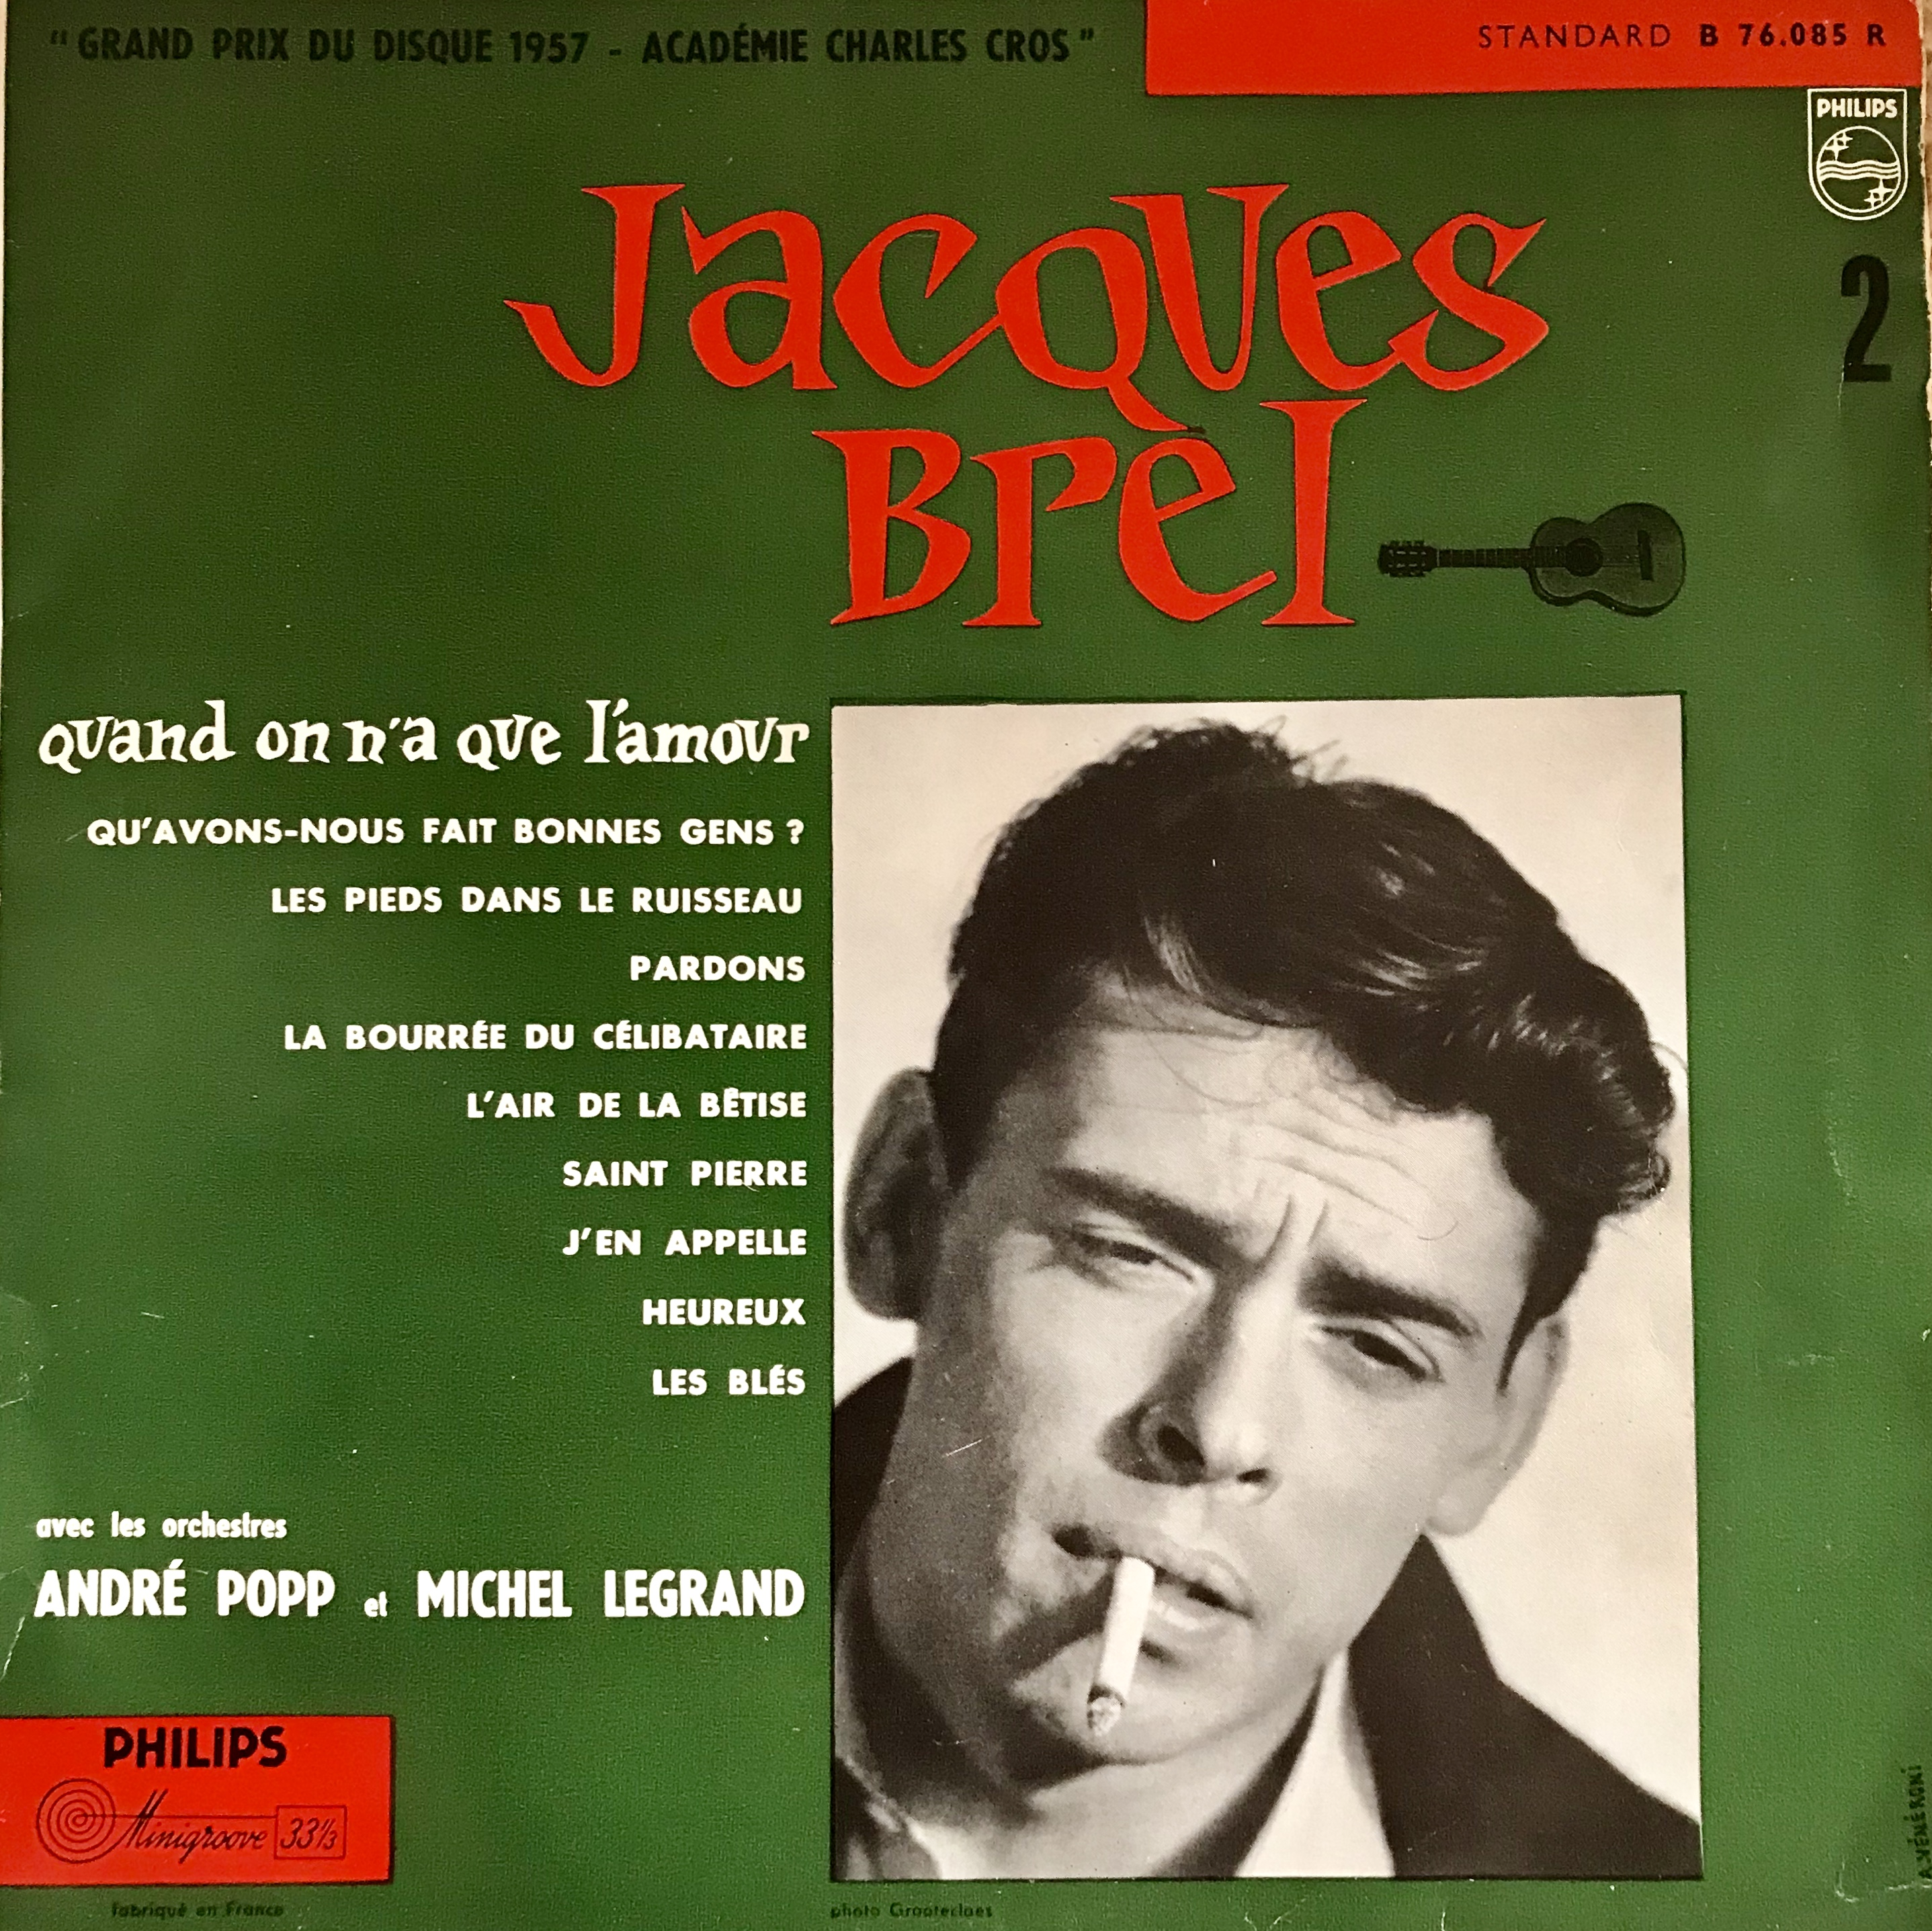 Jacques Brel Vinyl Album Quand On N'A Que L'Amour